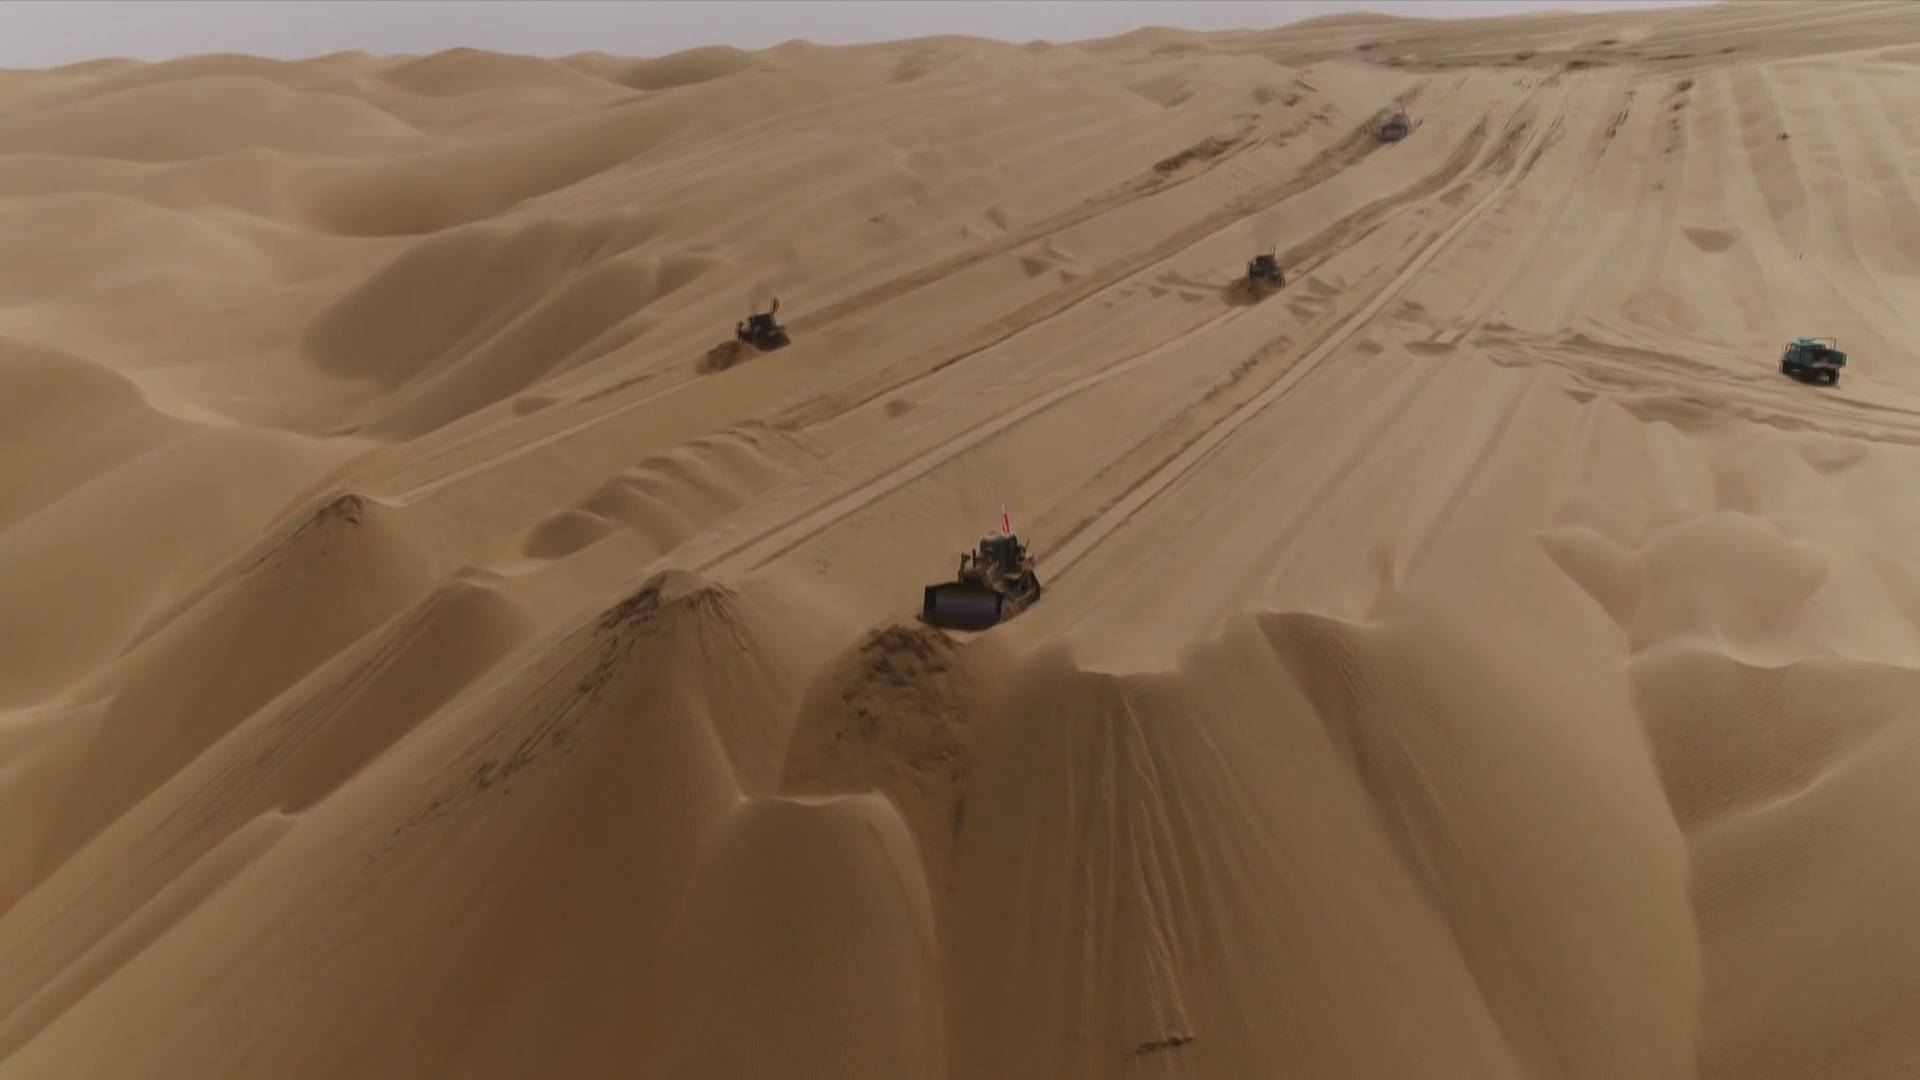 GLOBALink   Third highway across China's largest desert built with environmental protection measures